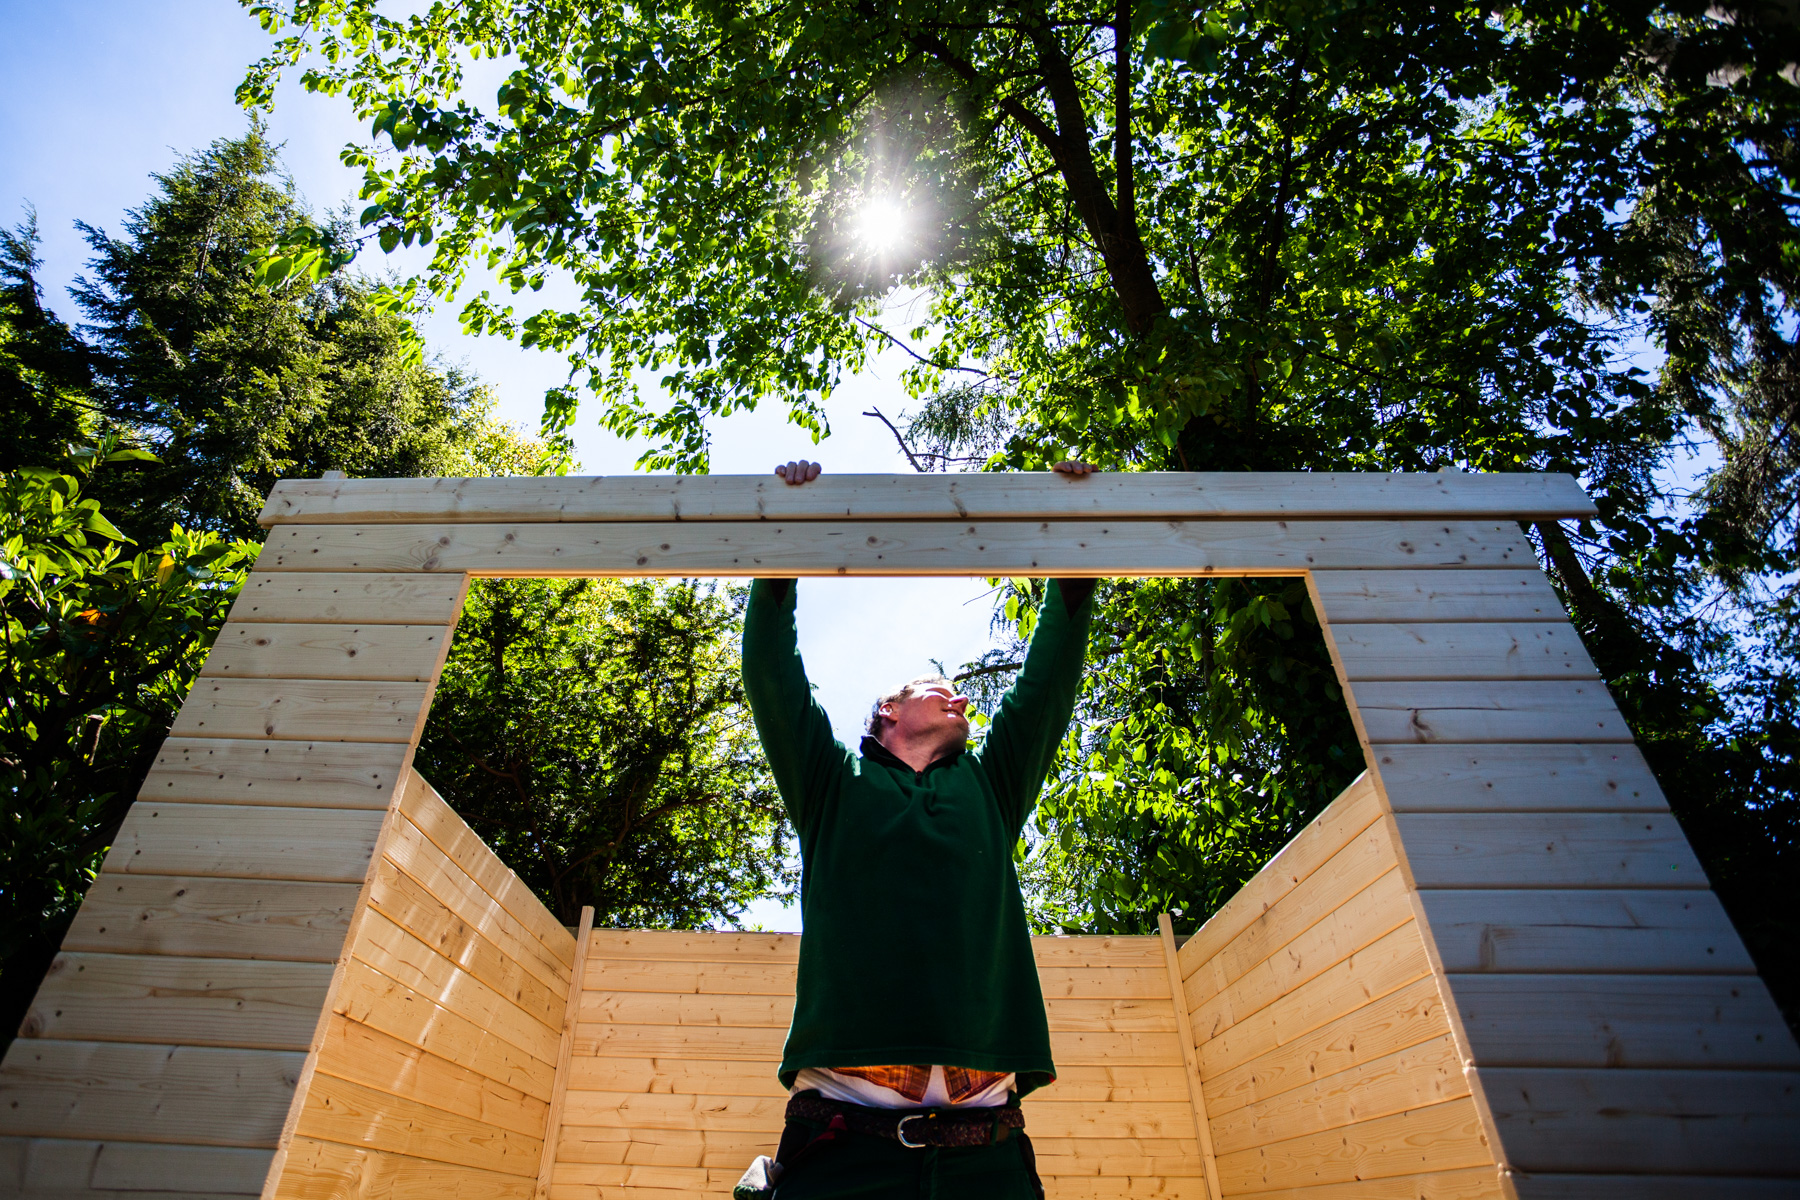 ©TomWoollard_OBI_Cologne-editorial-lifestyle-garden-worker-building-wooden-shed-construction.jpg